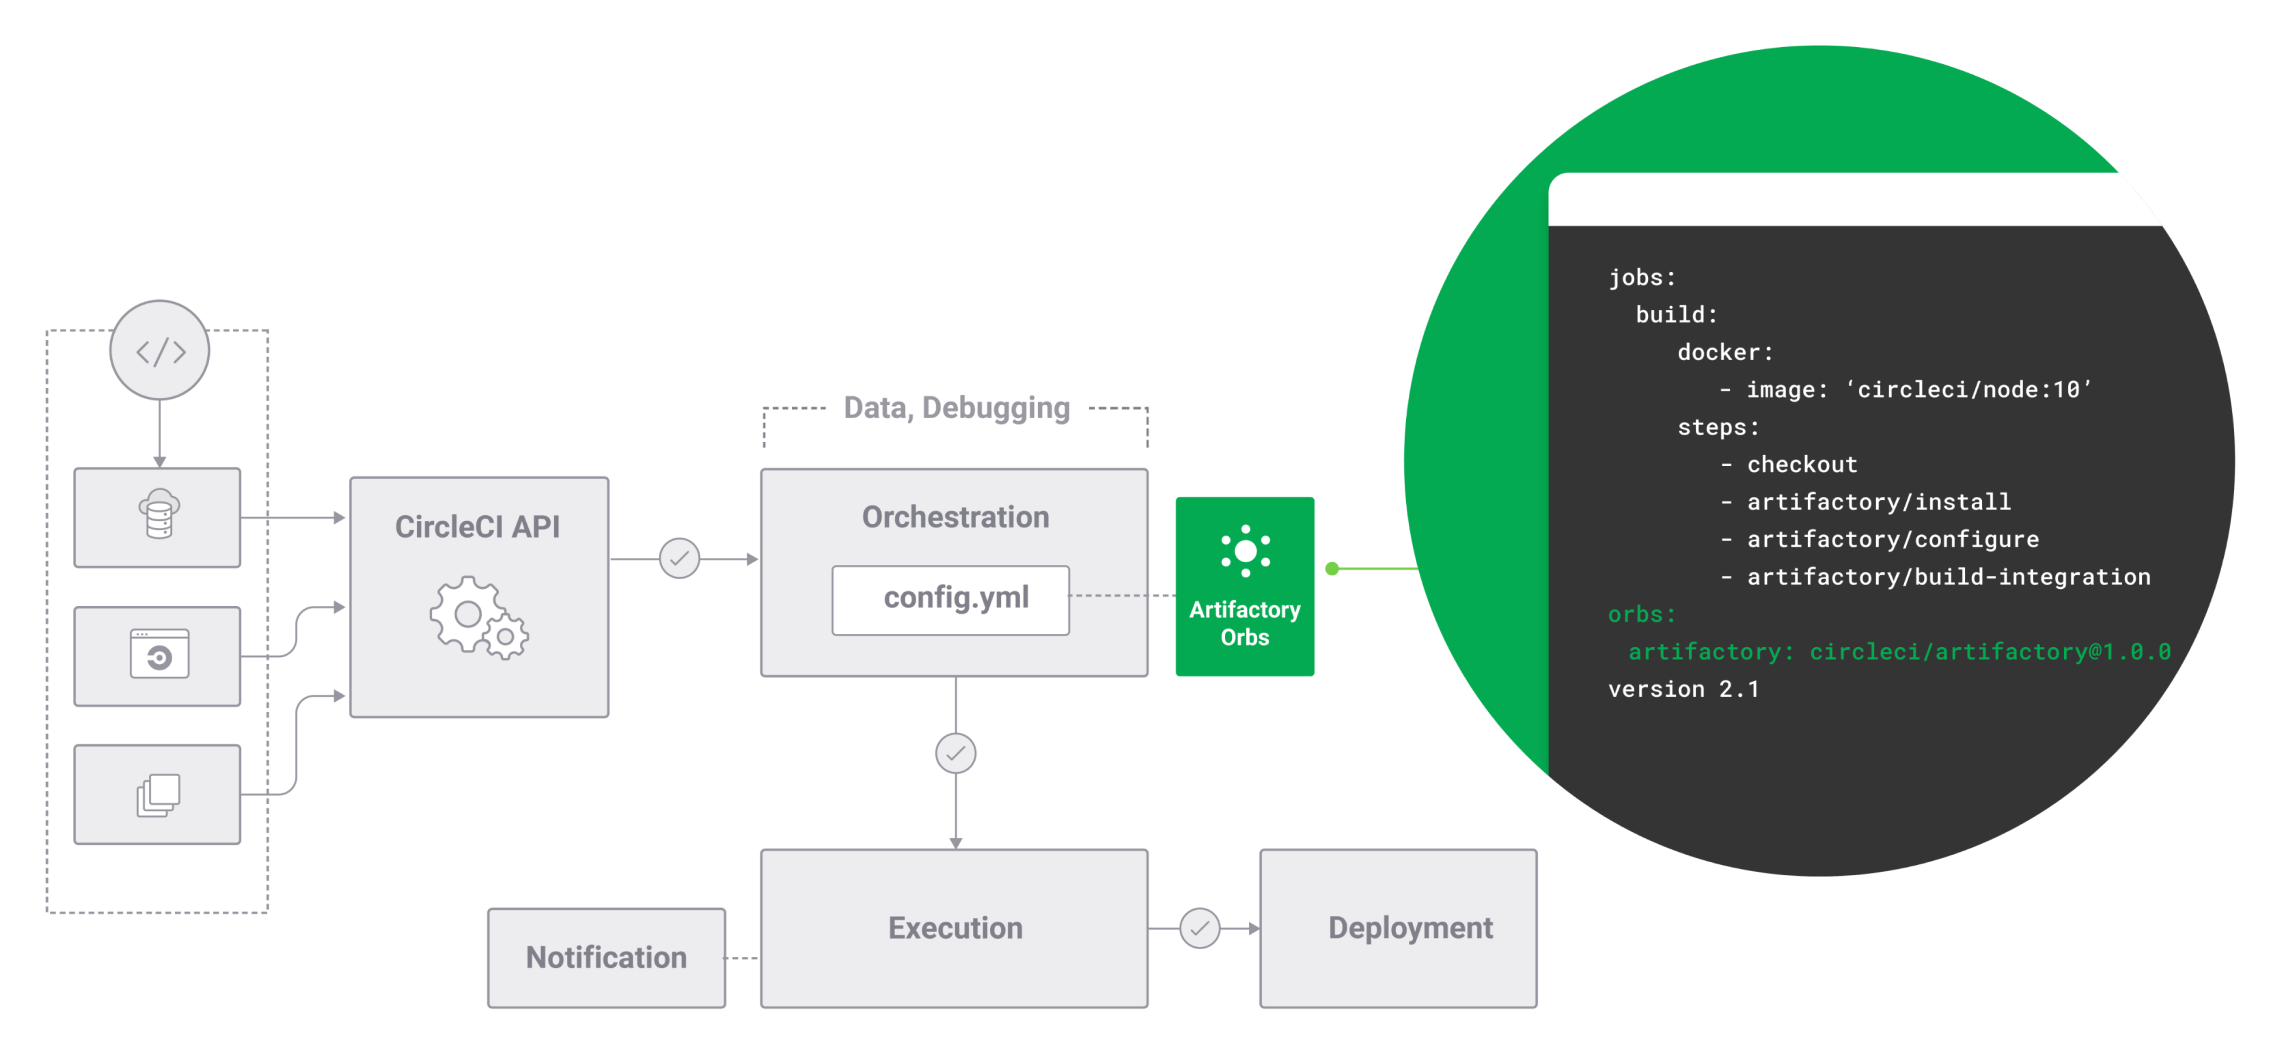 Diagram of Artifactory Orbs being used in CircleCI config